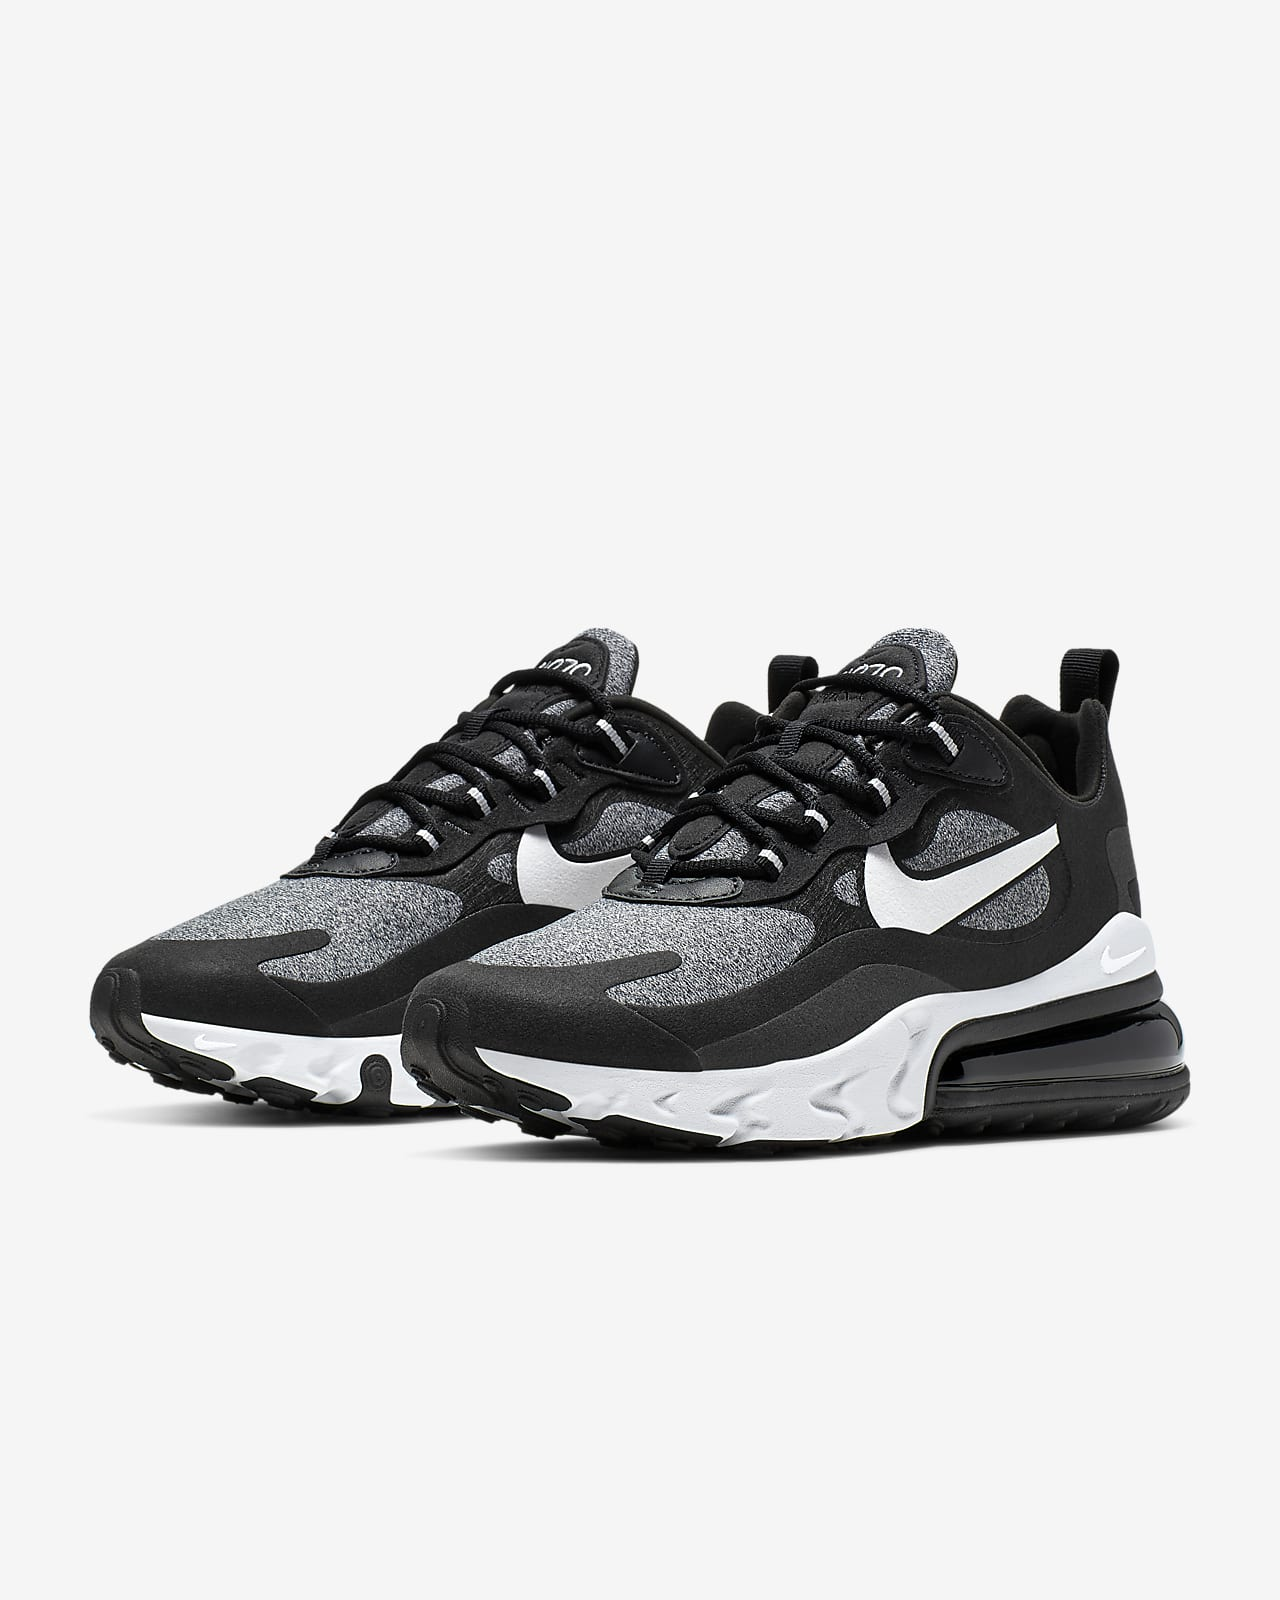 USA Online | The Hottest Nike Air Max Dia new collections